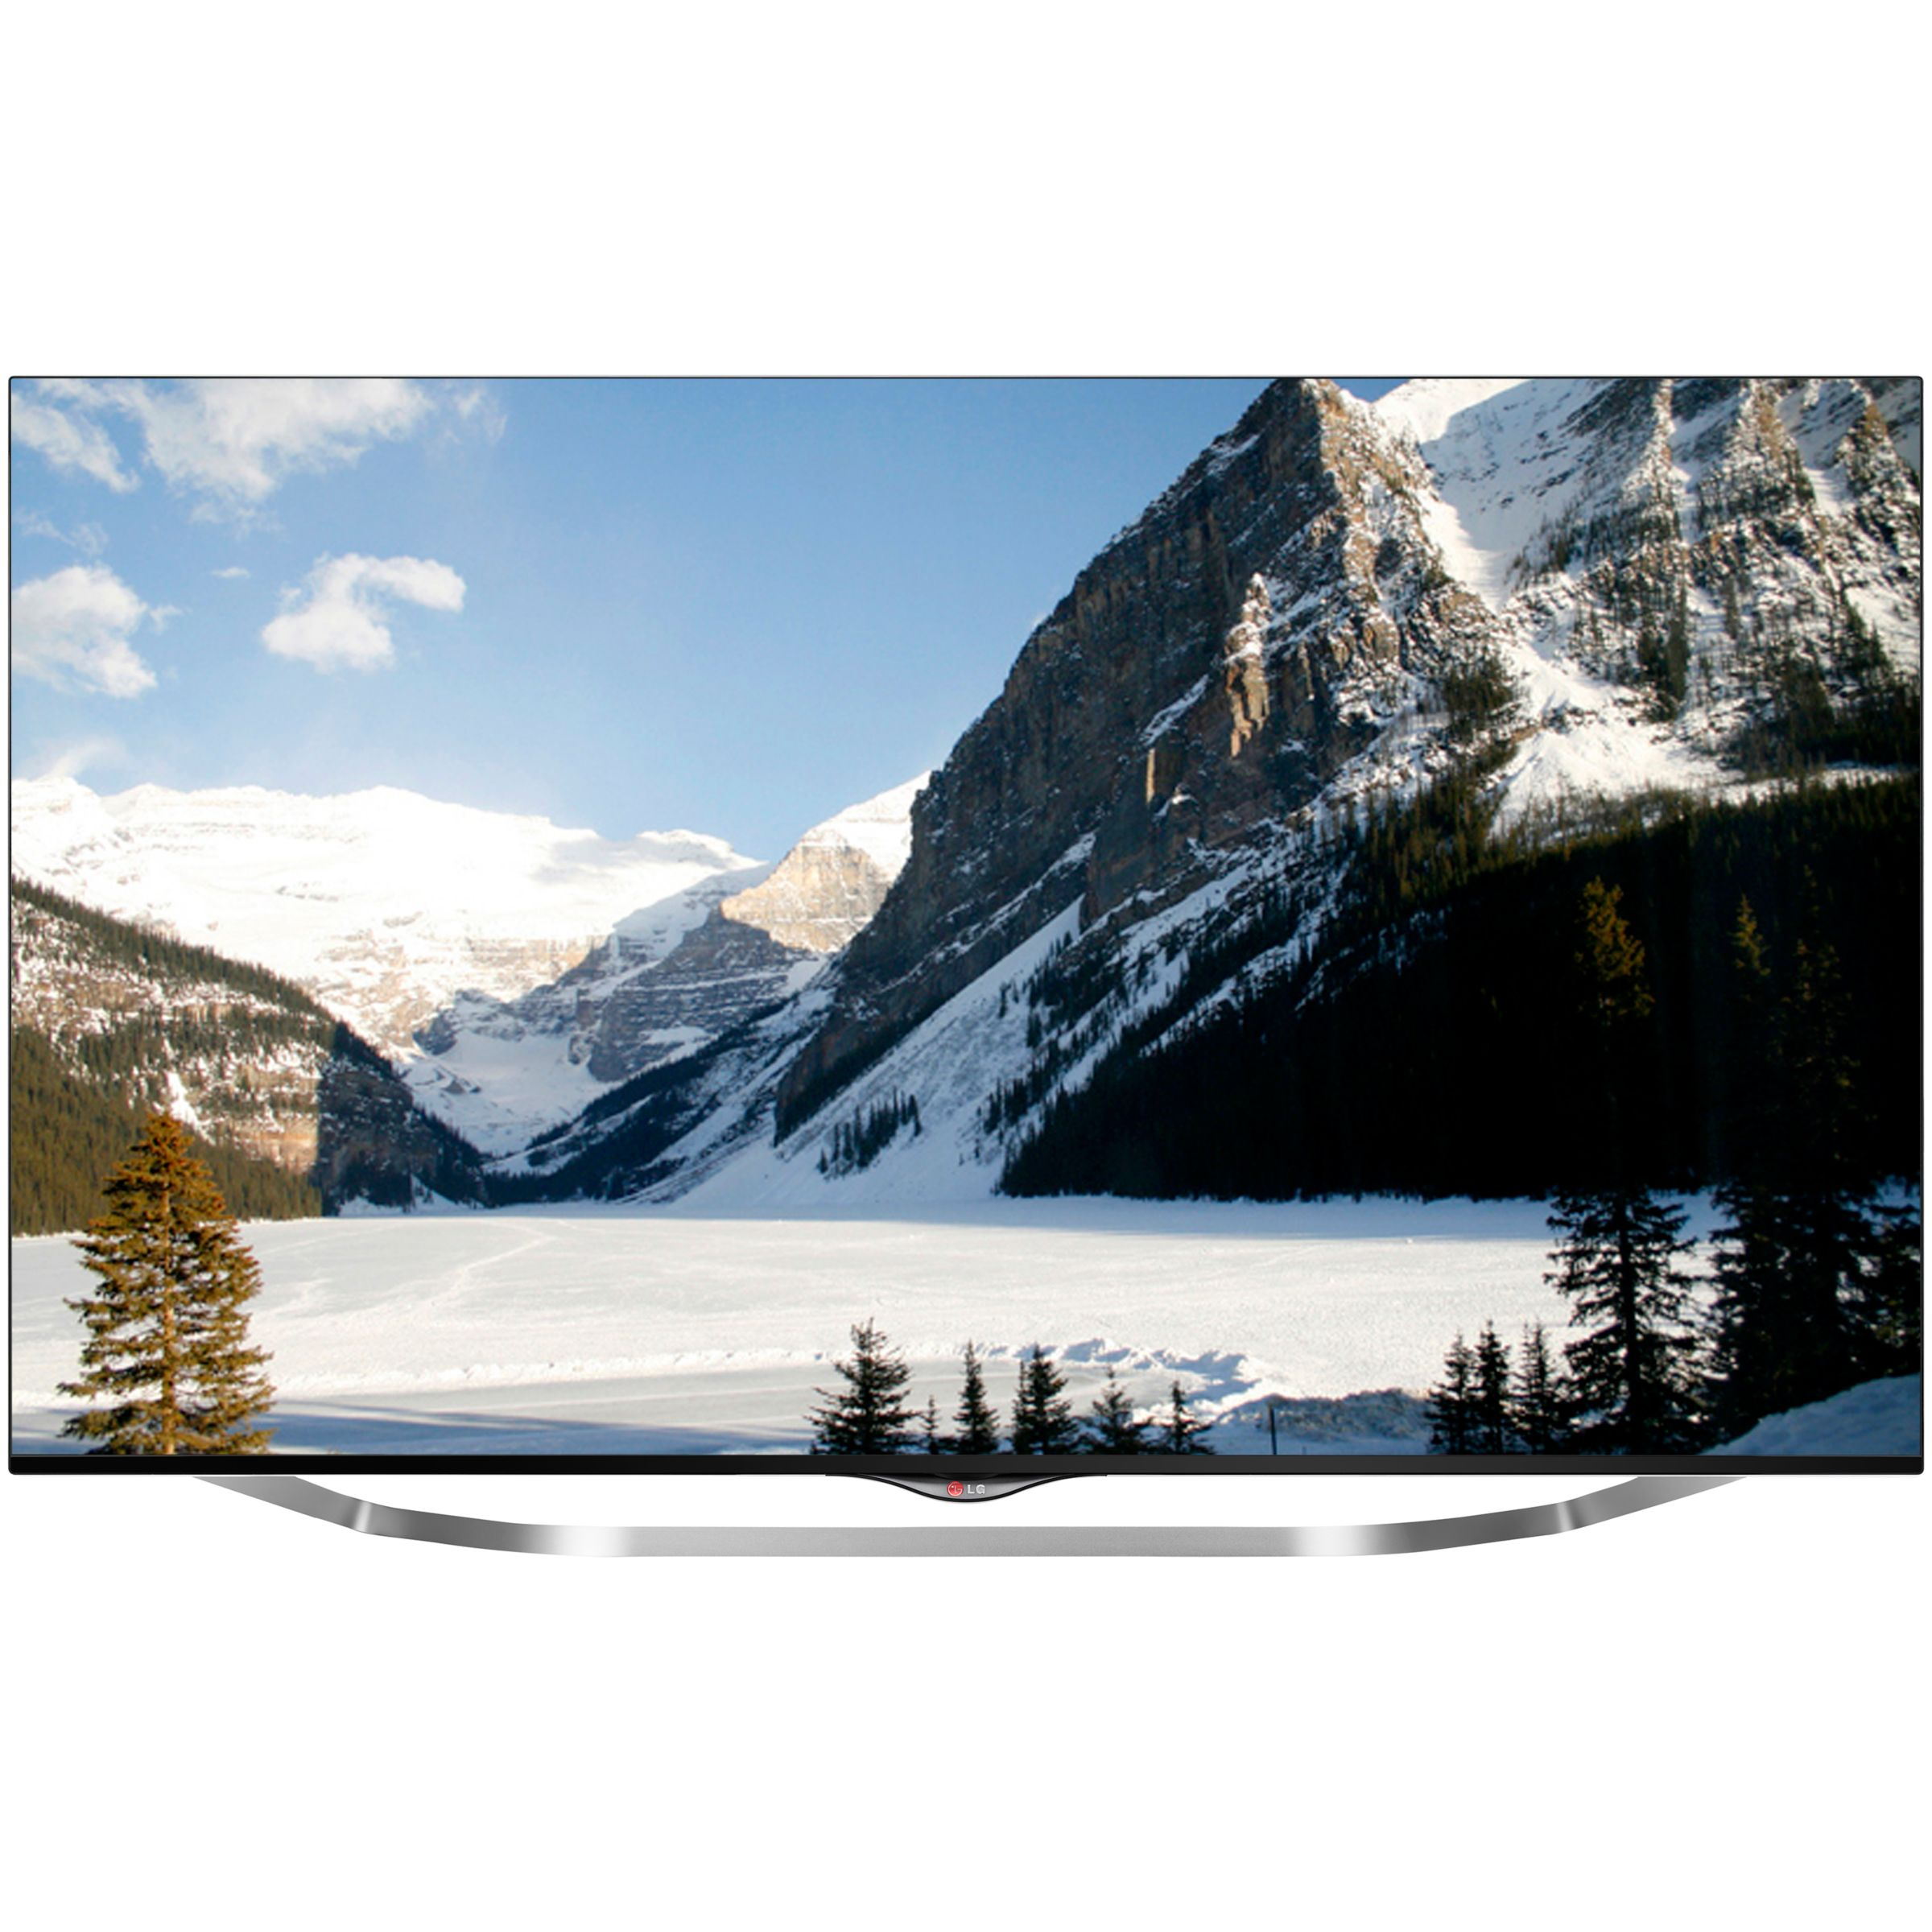 LG 55UB850V LED 4K Ultra HD 3D Smart TV 55 with Freeview HD